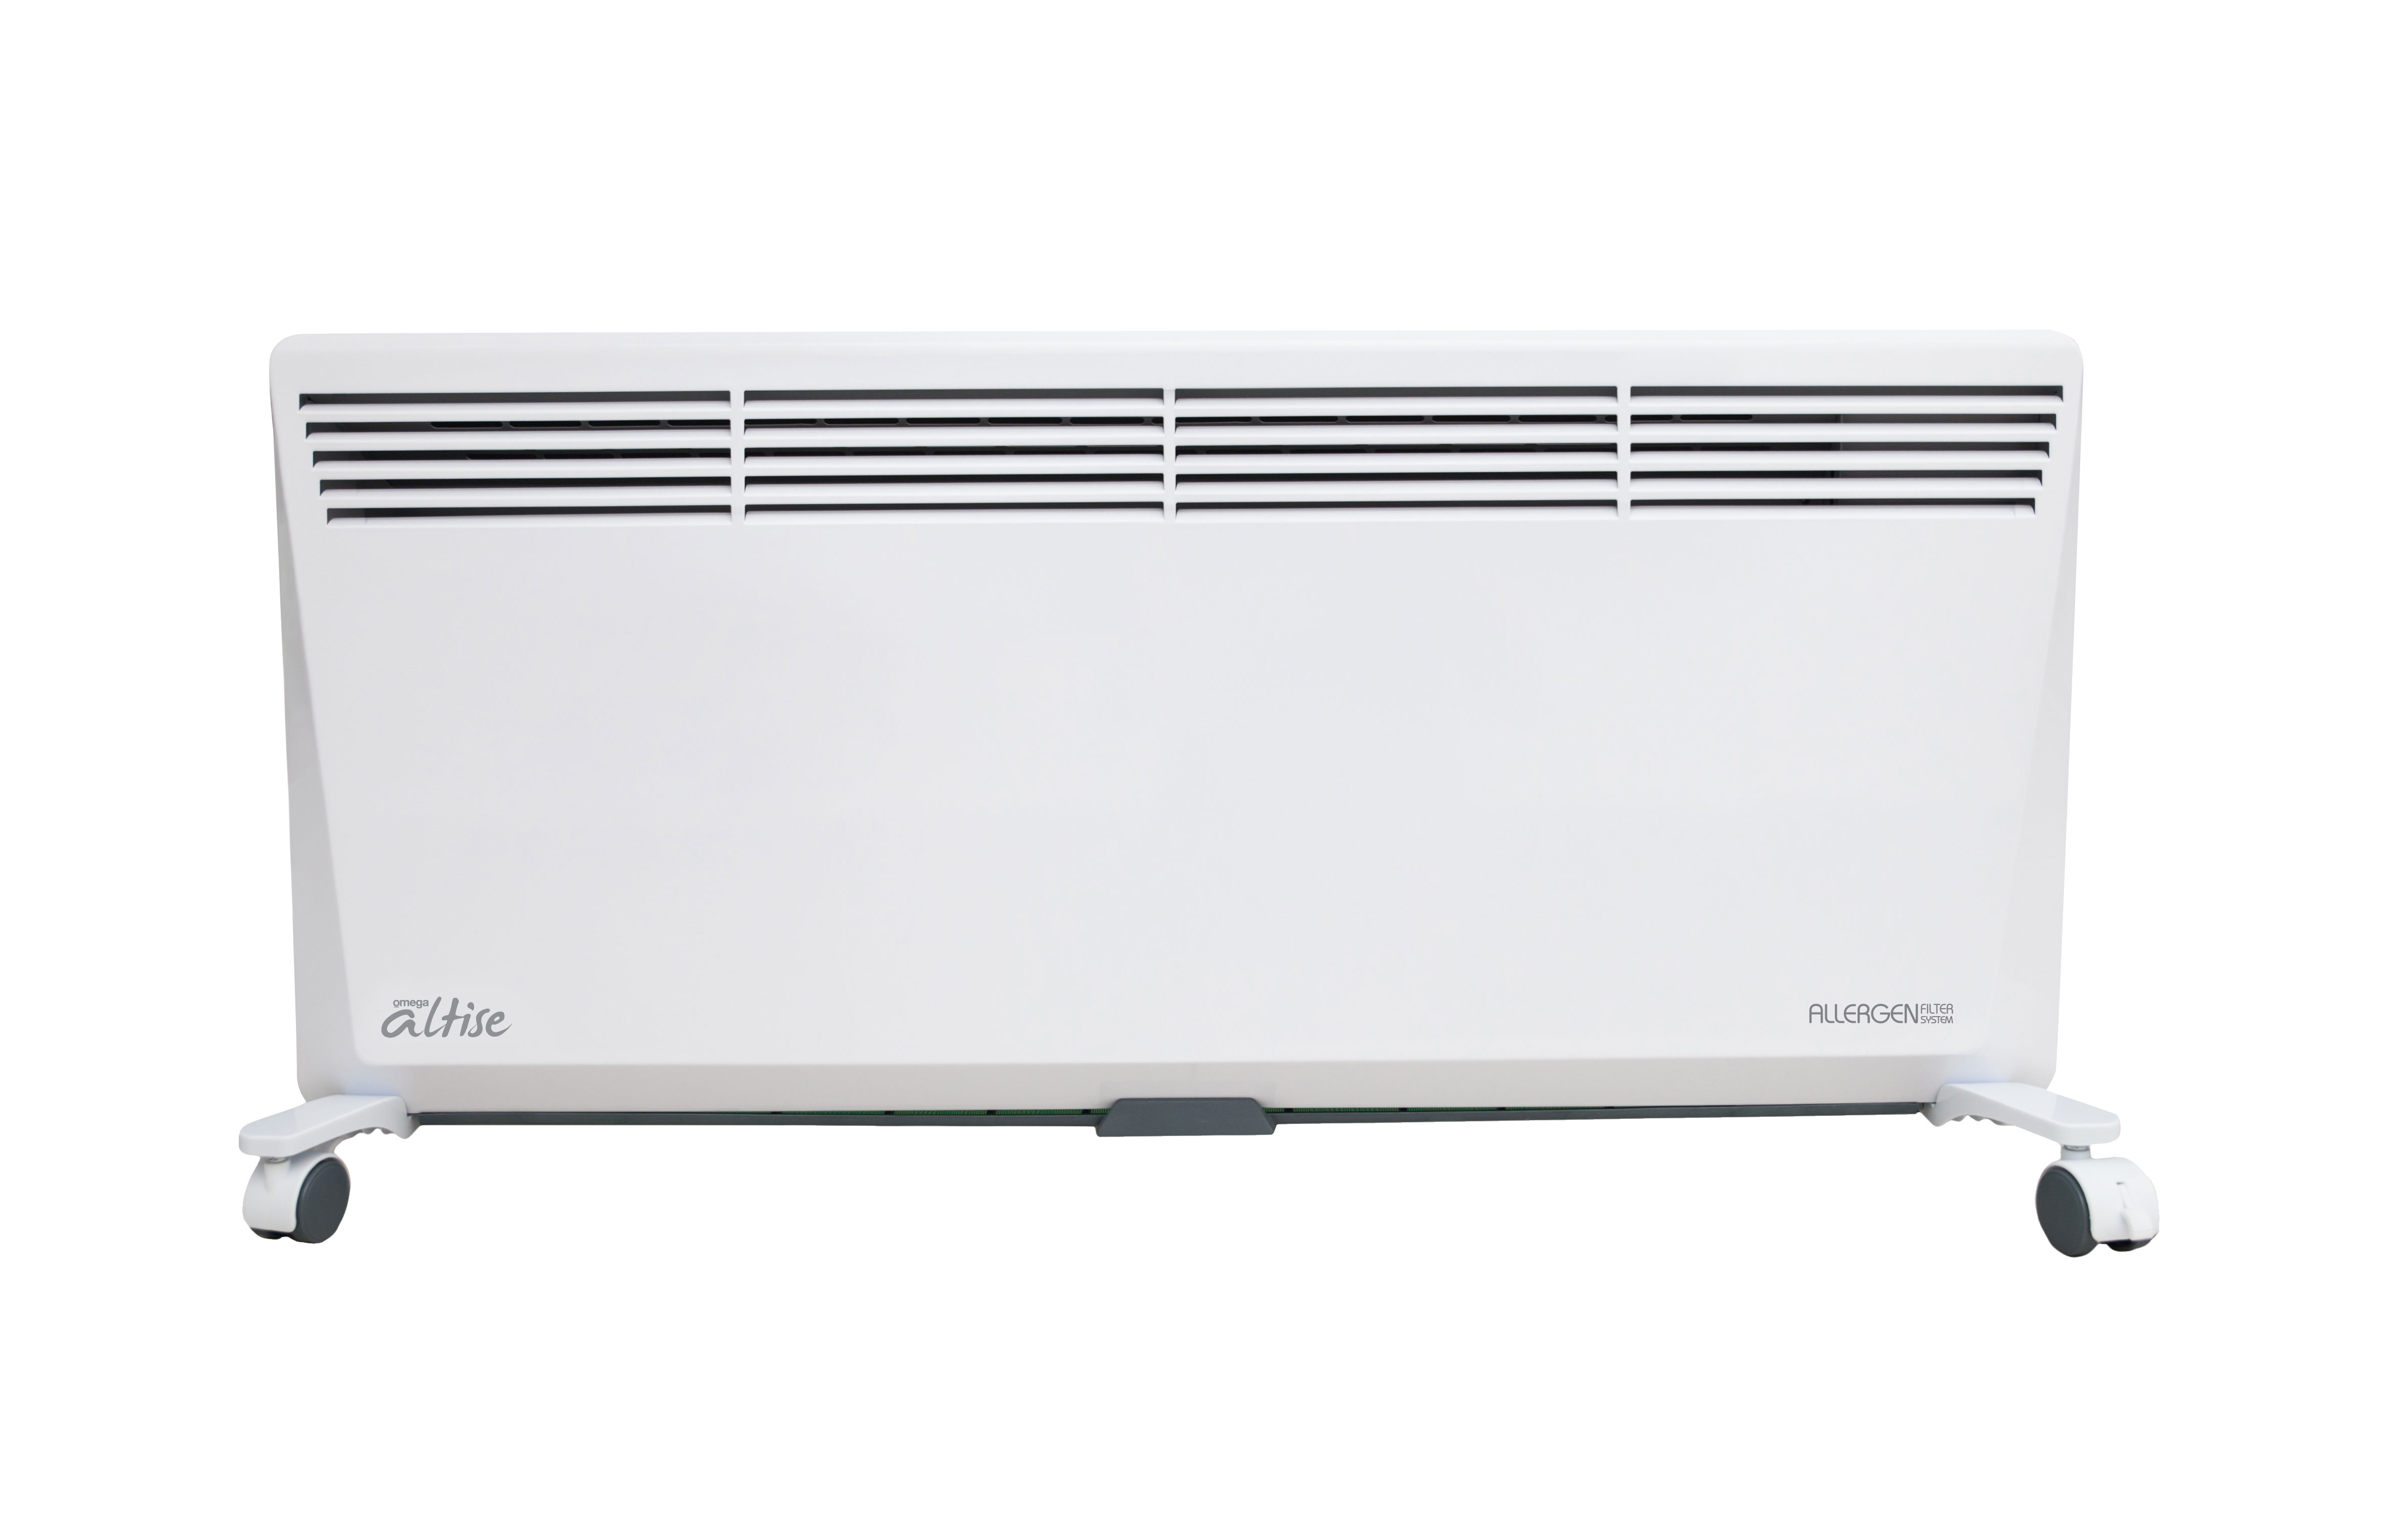 Omega Altise product Panel Heater - With Filter2400WANPE2400W